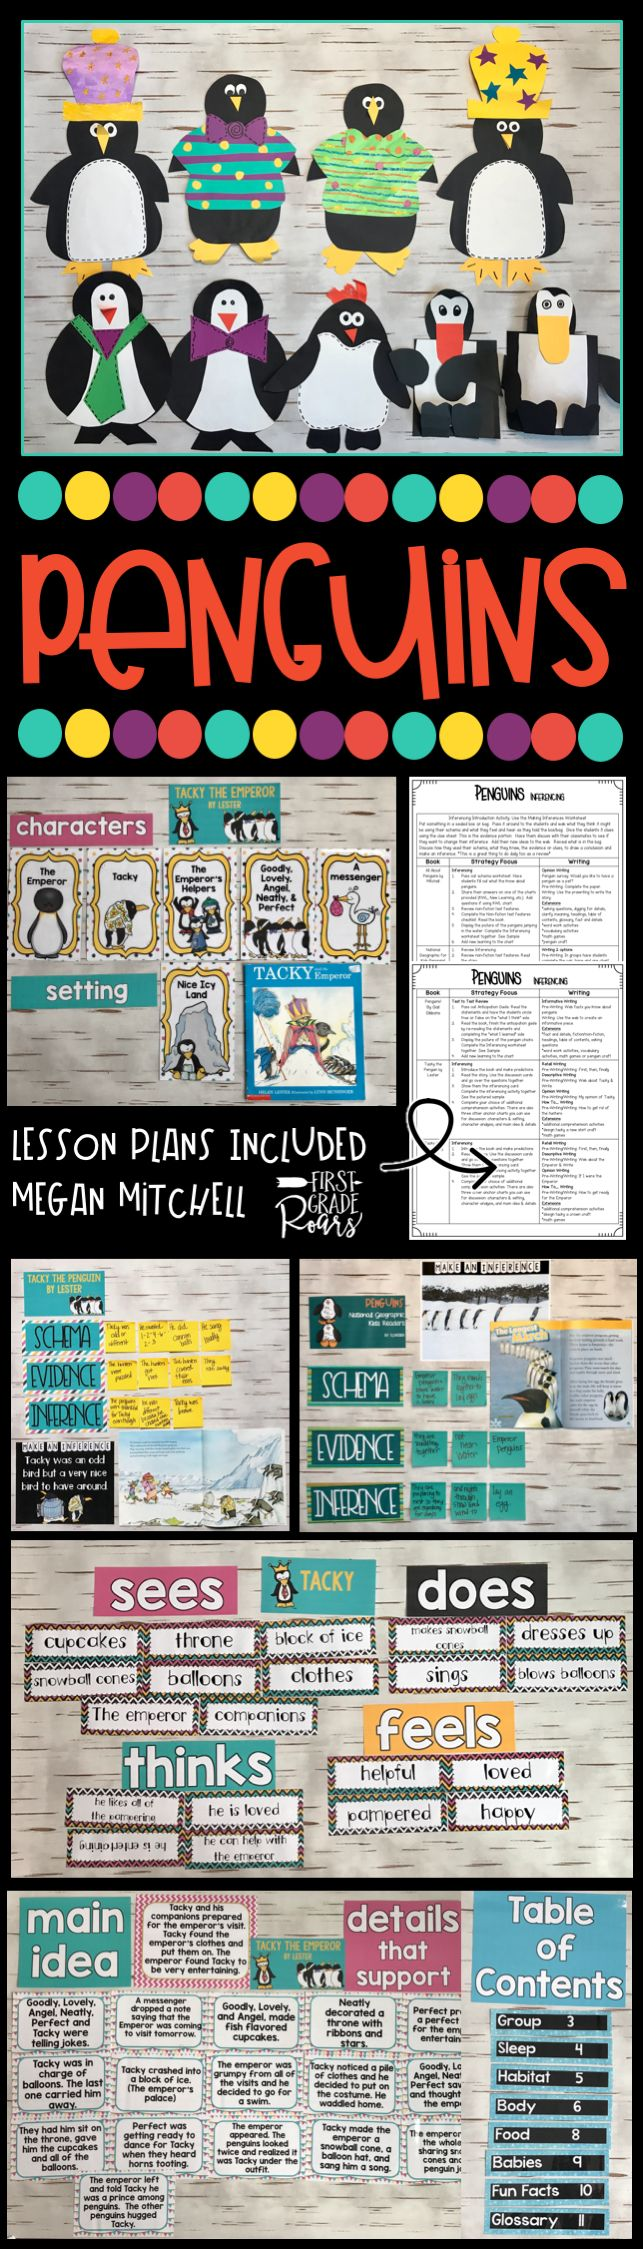 This unit on penguins will help your students understand non-fiction text features, inferencing and guided reading strategies for both fiction and non-fiction text. There are math games, writing activities, crafts, and so much more. Loads of anchor chart ideas too. This is perfect for first grade and second grade students.